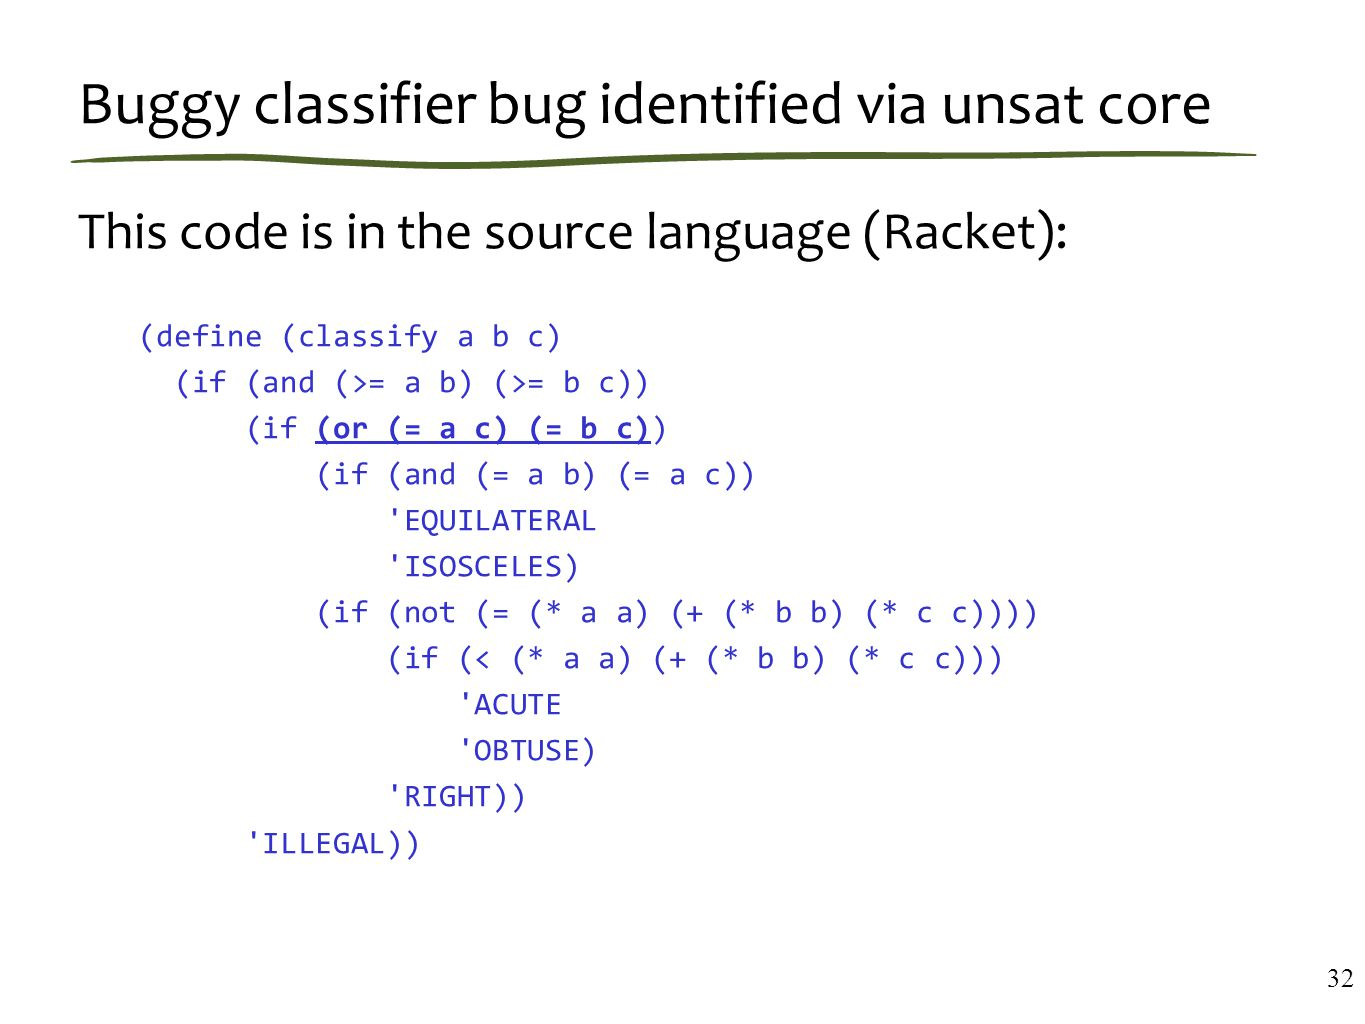 Buggy classifier bug identified via unsat core This code is in the source language (Racket): (define (classify a b c) (if (and (>= a b) (>= b c)) (if (or (= a c) (= b c)) (if (and (= a b) (= a c)) EQUILATERAL ISOSCELES) (if (not (= (* a a) (+ (* b b) (* c c)))) (if (< (* a a) (+ (* b b) (* c c))) ACUTE OBTUSE) RIGHT)) ILLEGAL)) 32